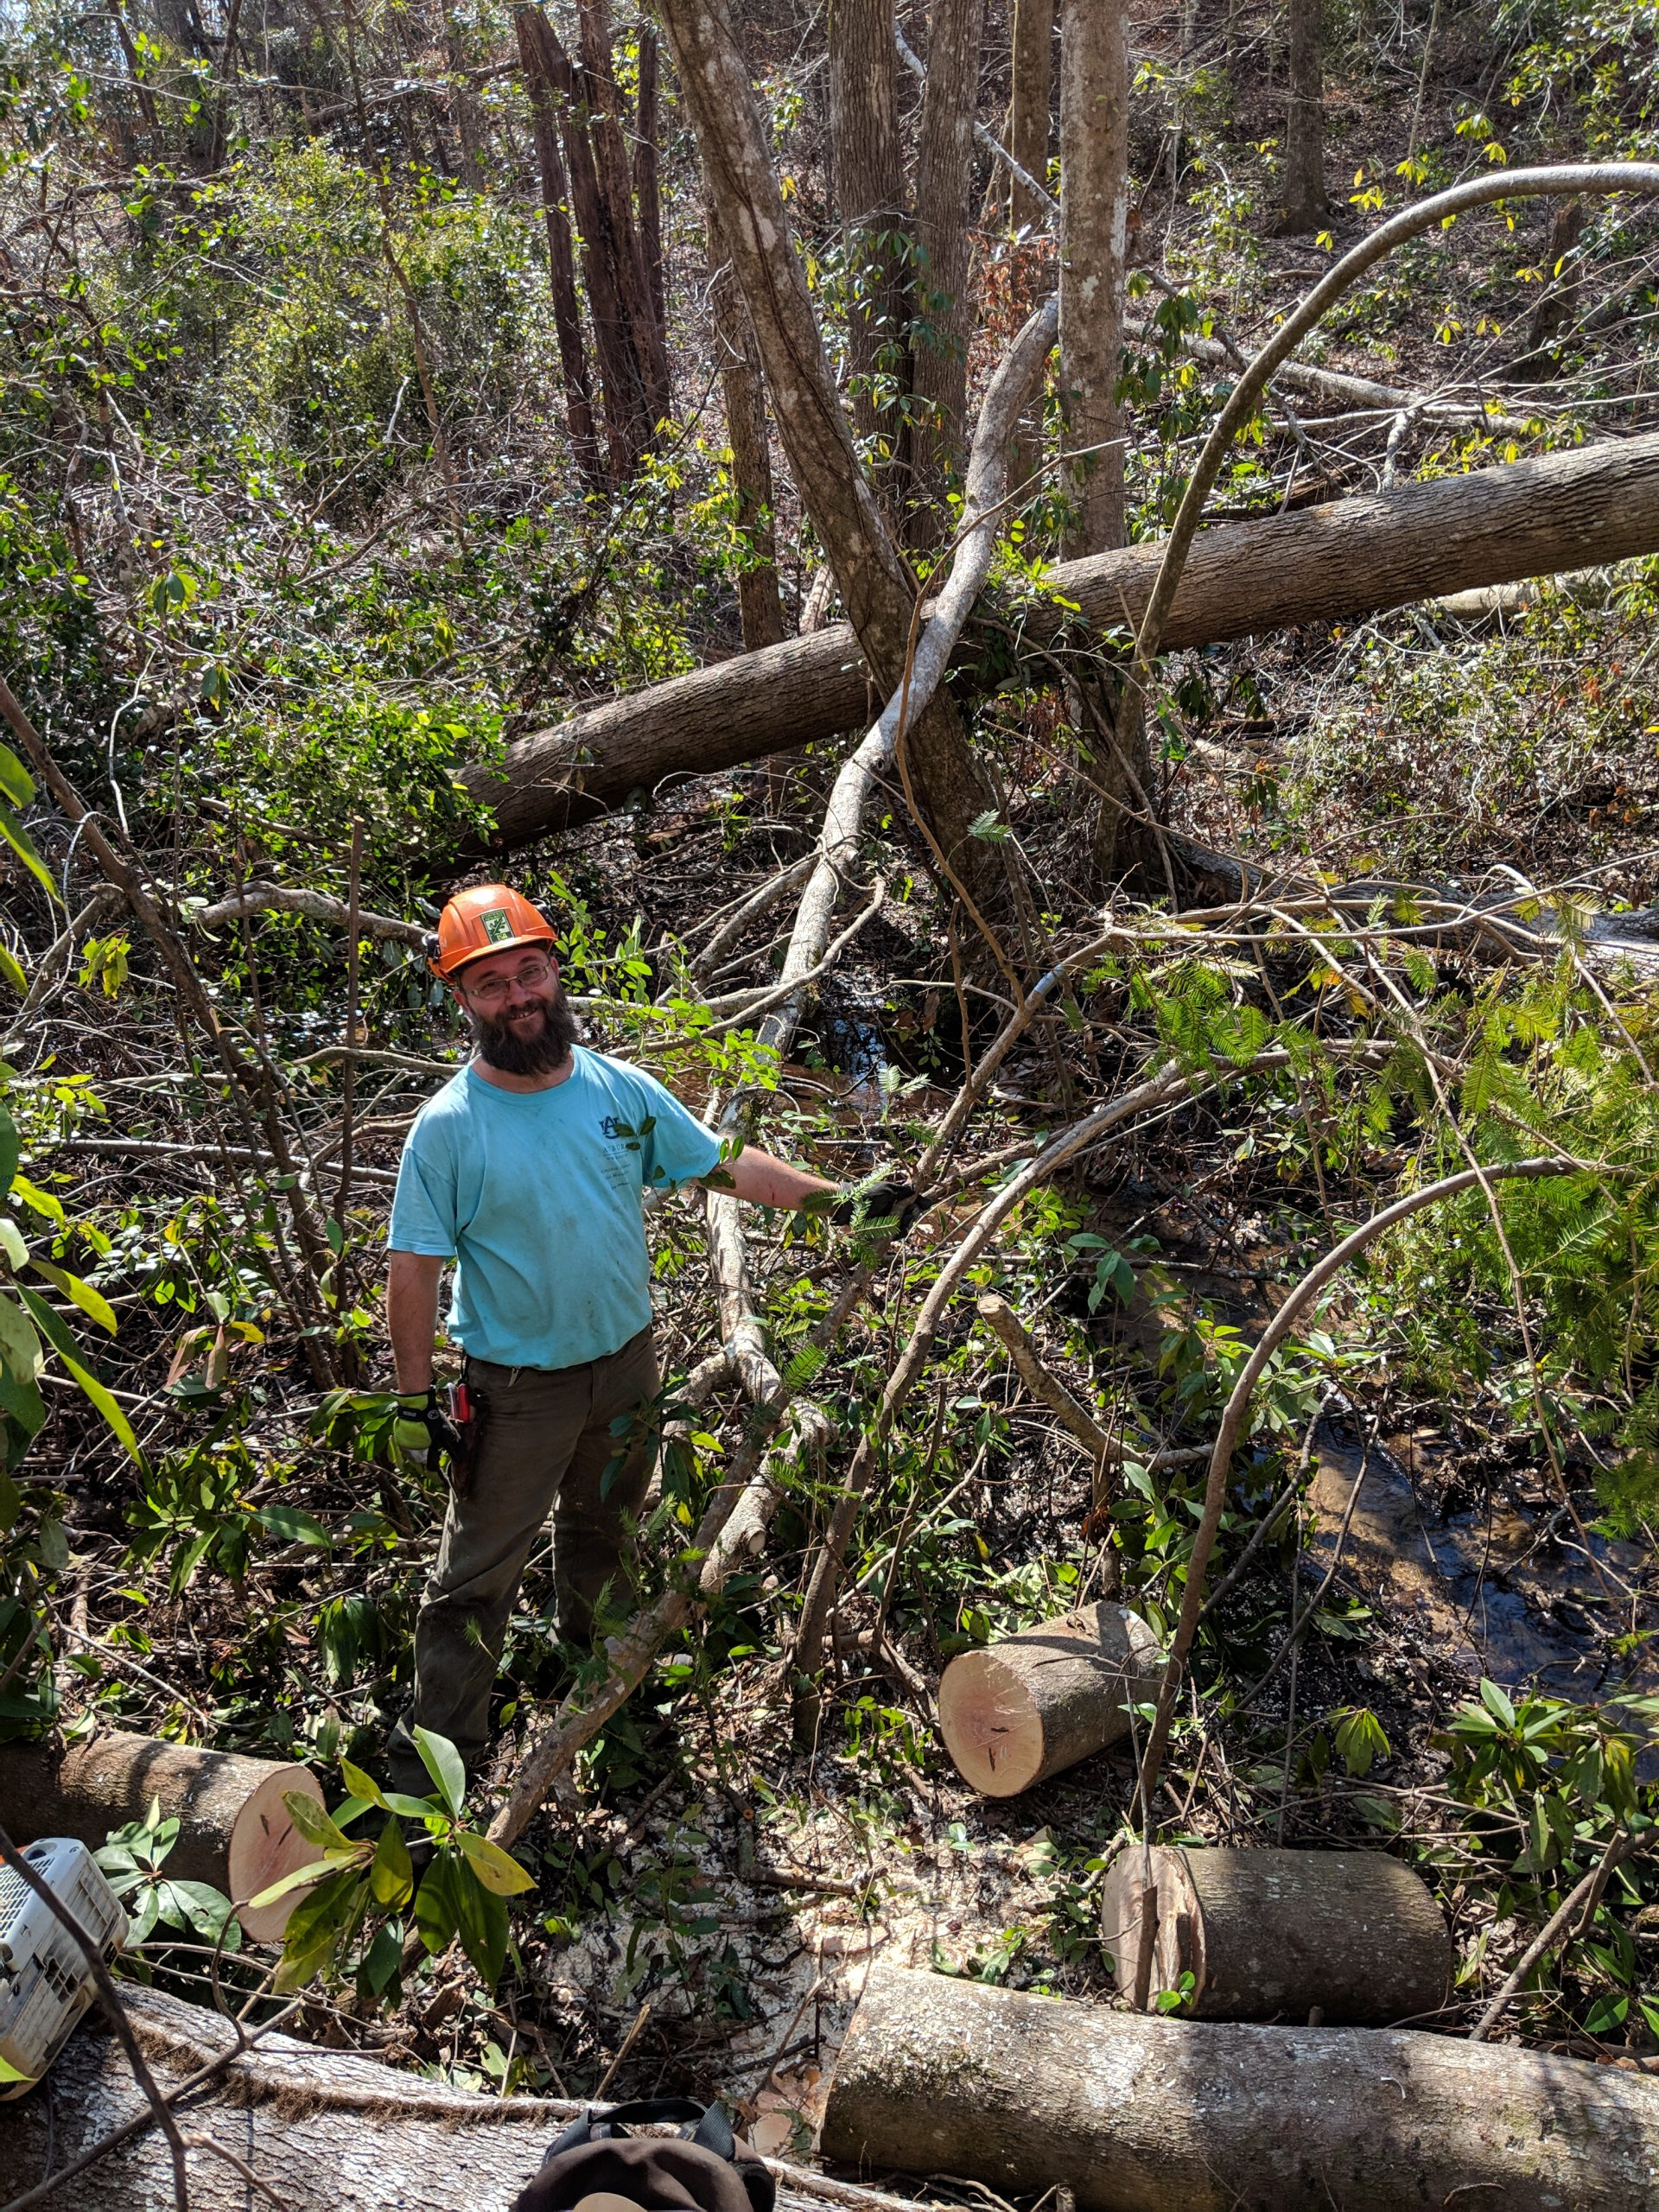 After the storm, saw skills proved key to ABG's torreya conservation program, as the removed debris that imperiled surviving trees.